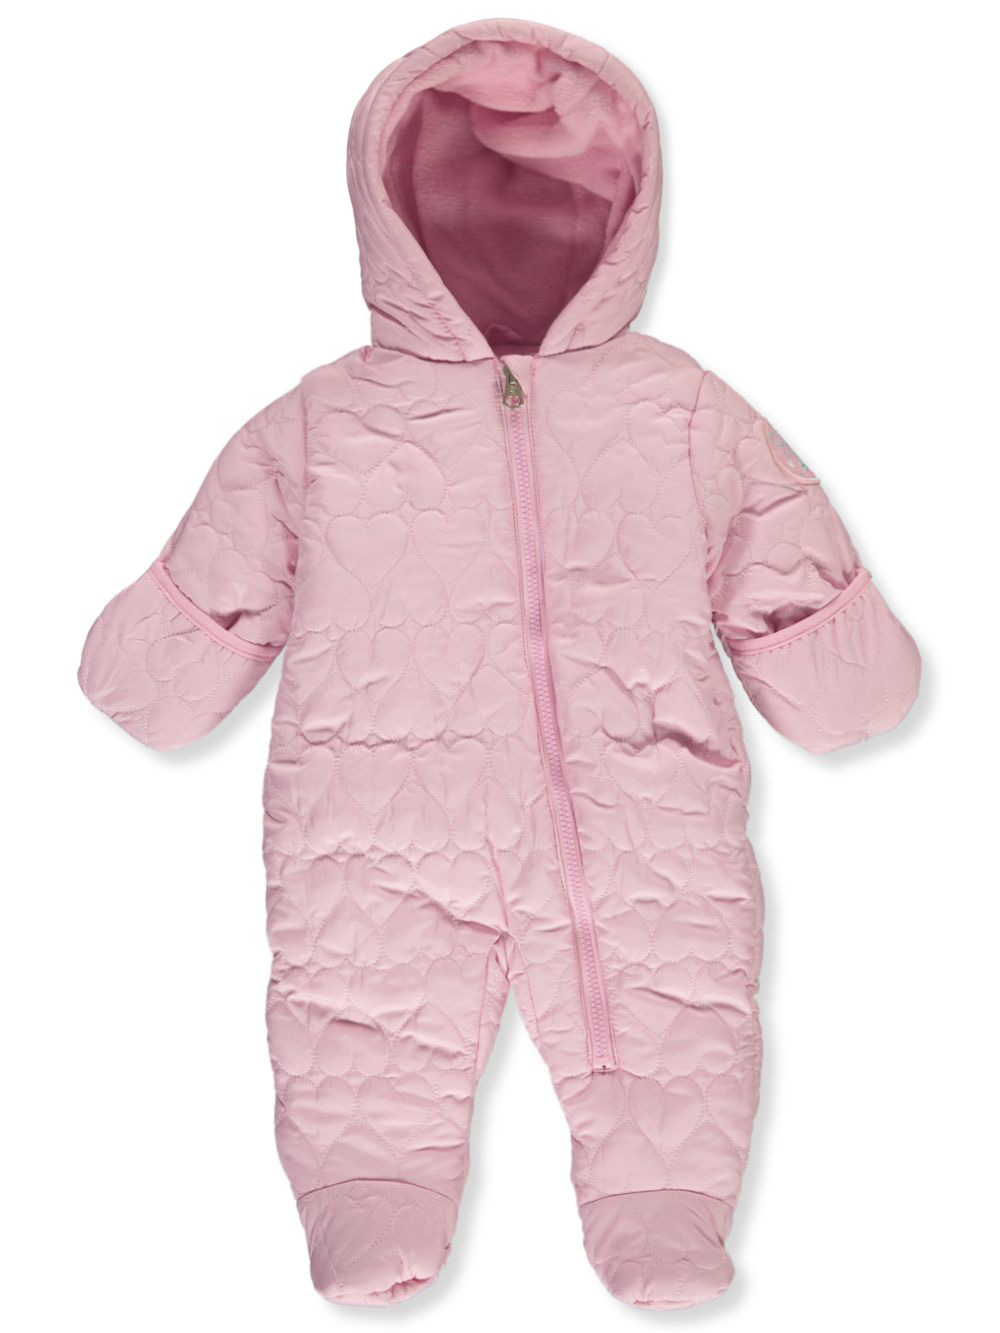 Heart Stitch Insulated Pram Suit